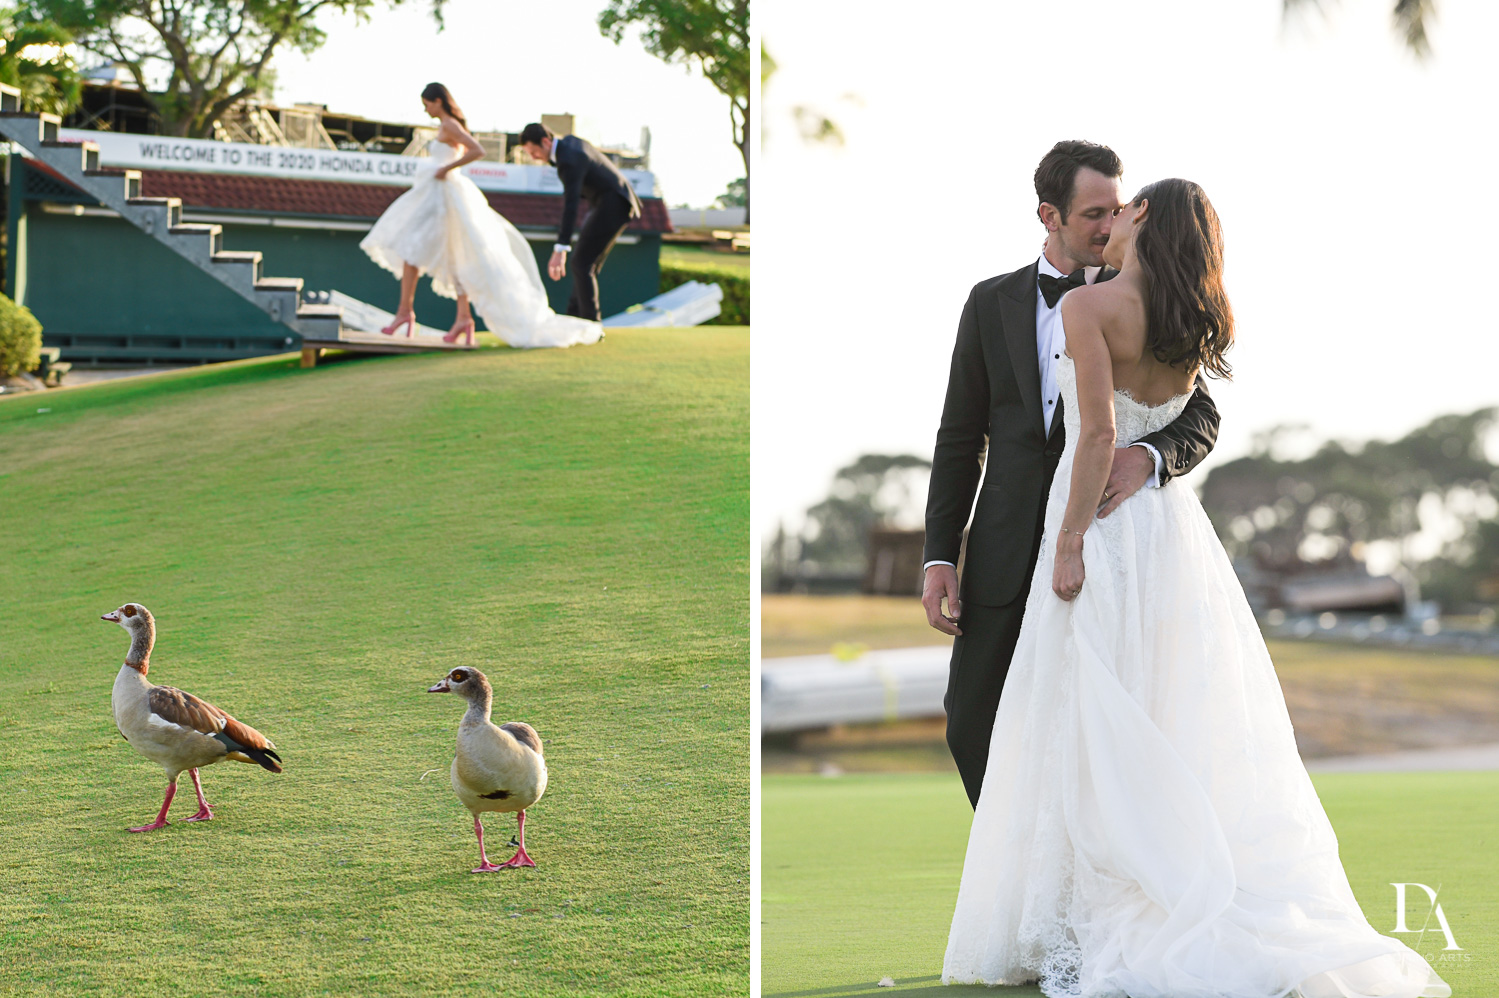 romantic photos at Stunning Golf Course Wedding at PGA National Palm Beach by Domino Arts Photography